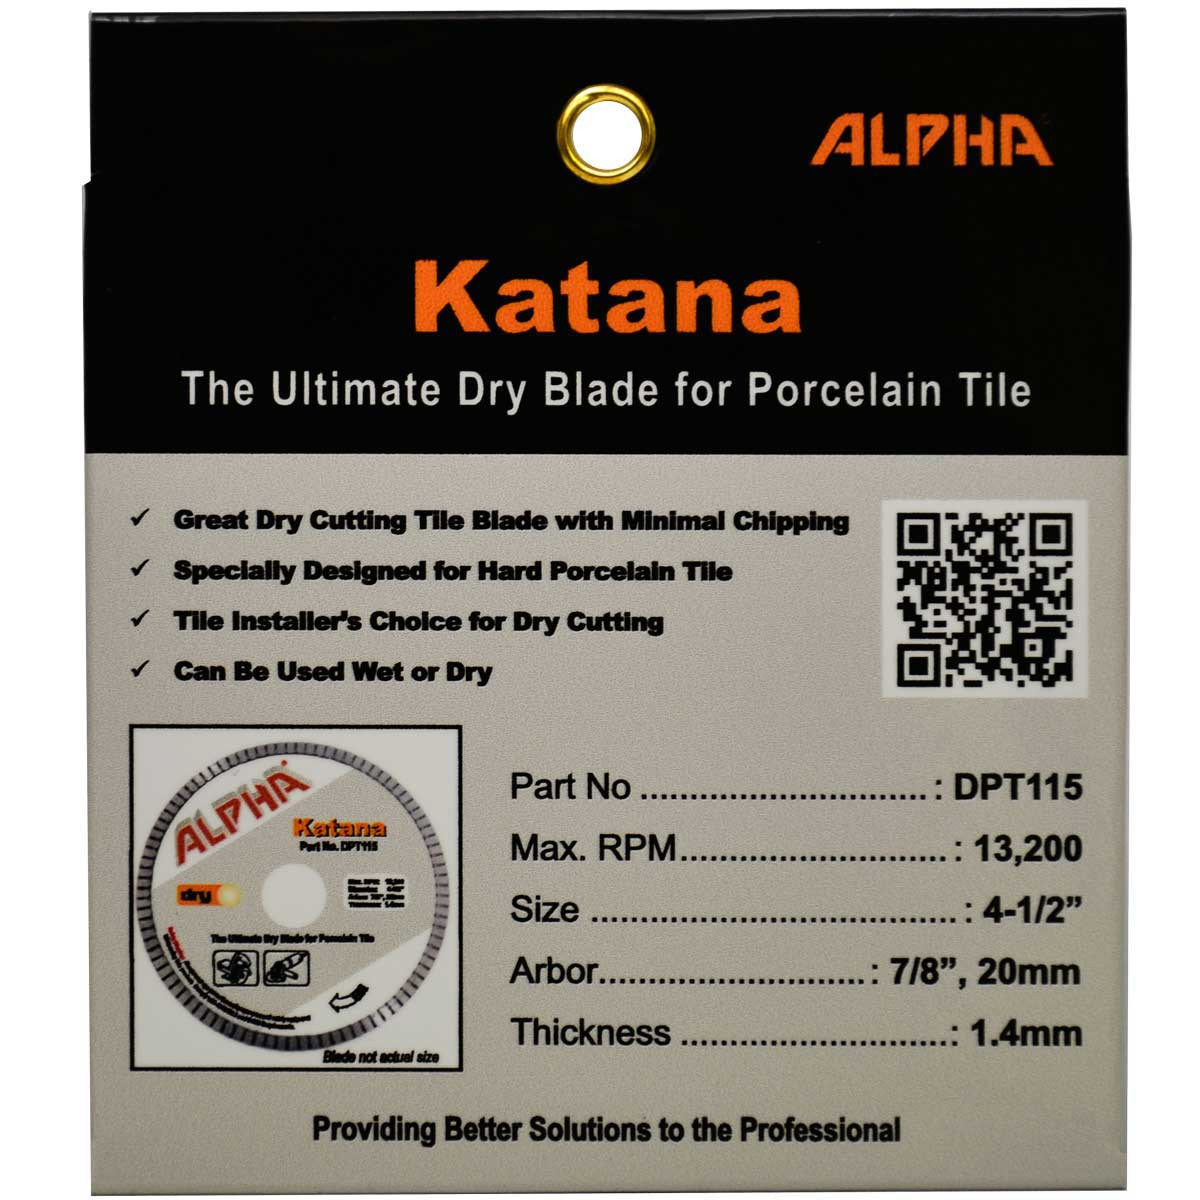 alpha 4 1/2in katana dry tile blade package